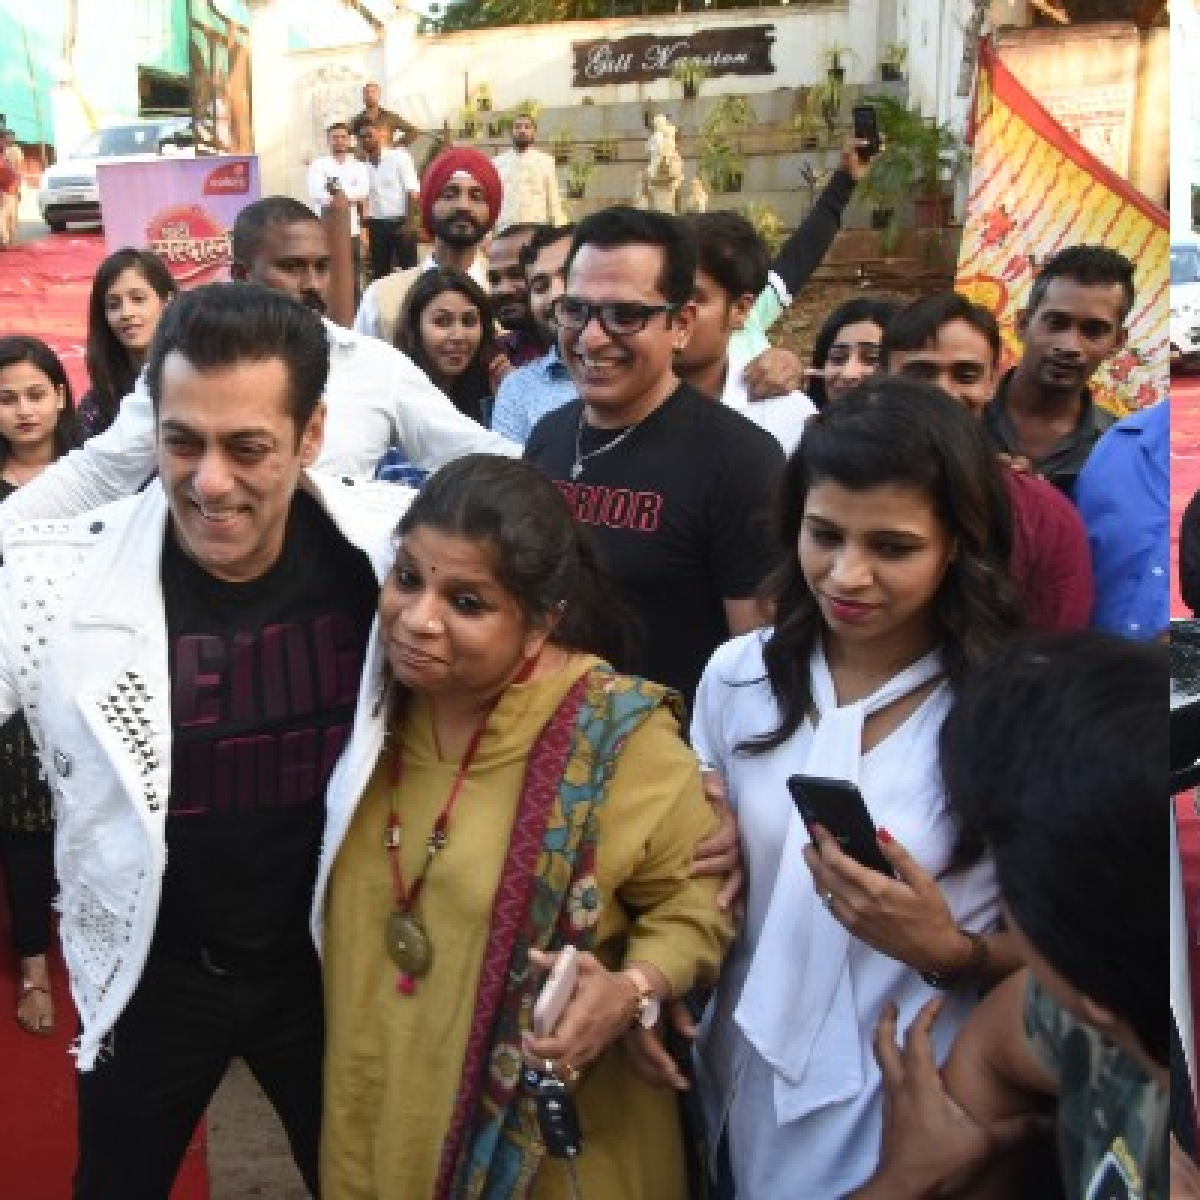 Watch: Salman Khan's bodyguard turns himself into 'Bhai' to protect the actor